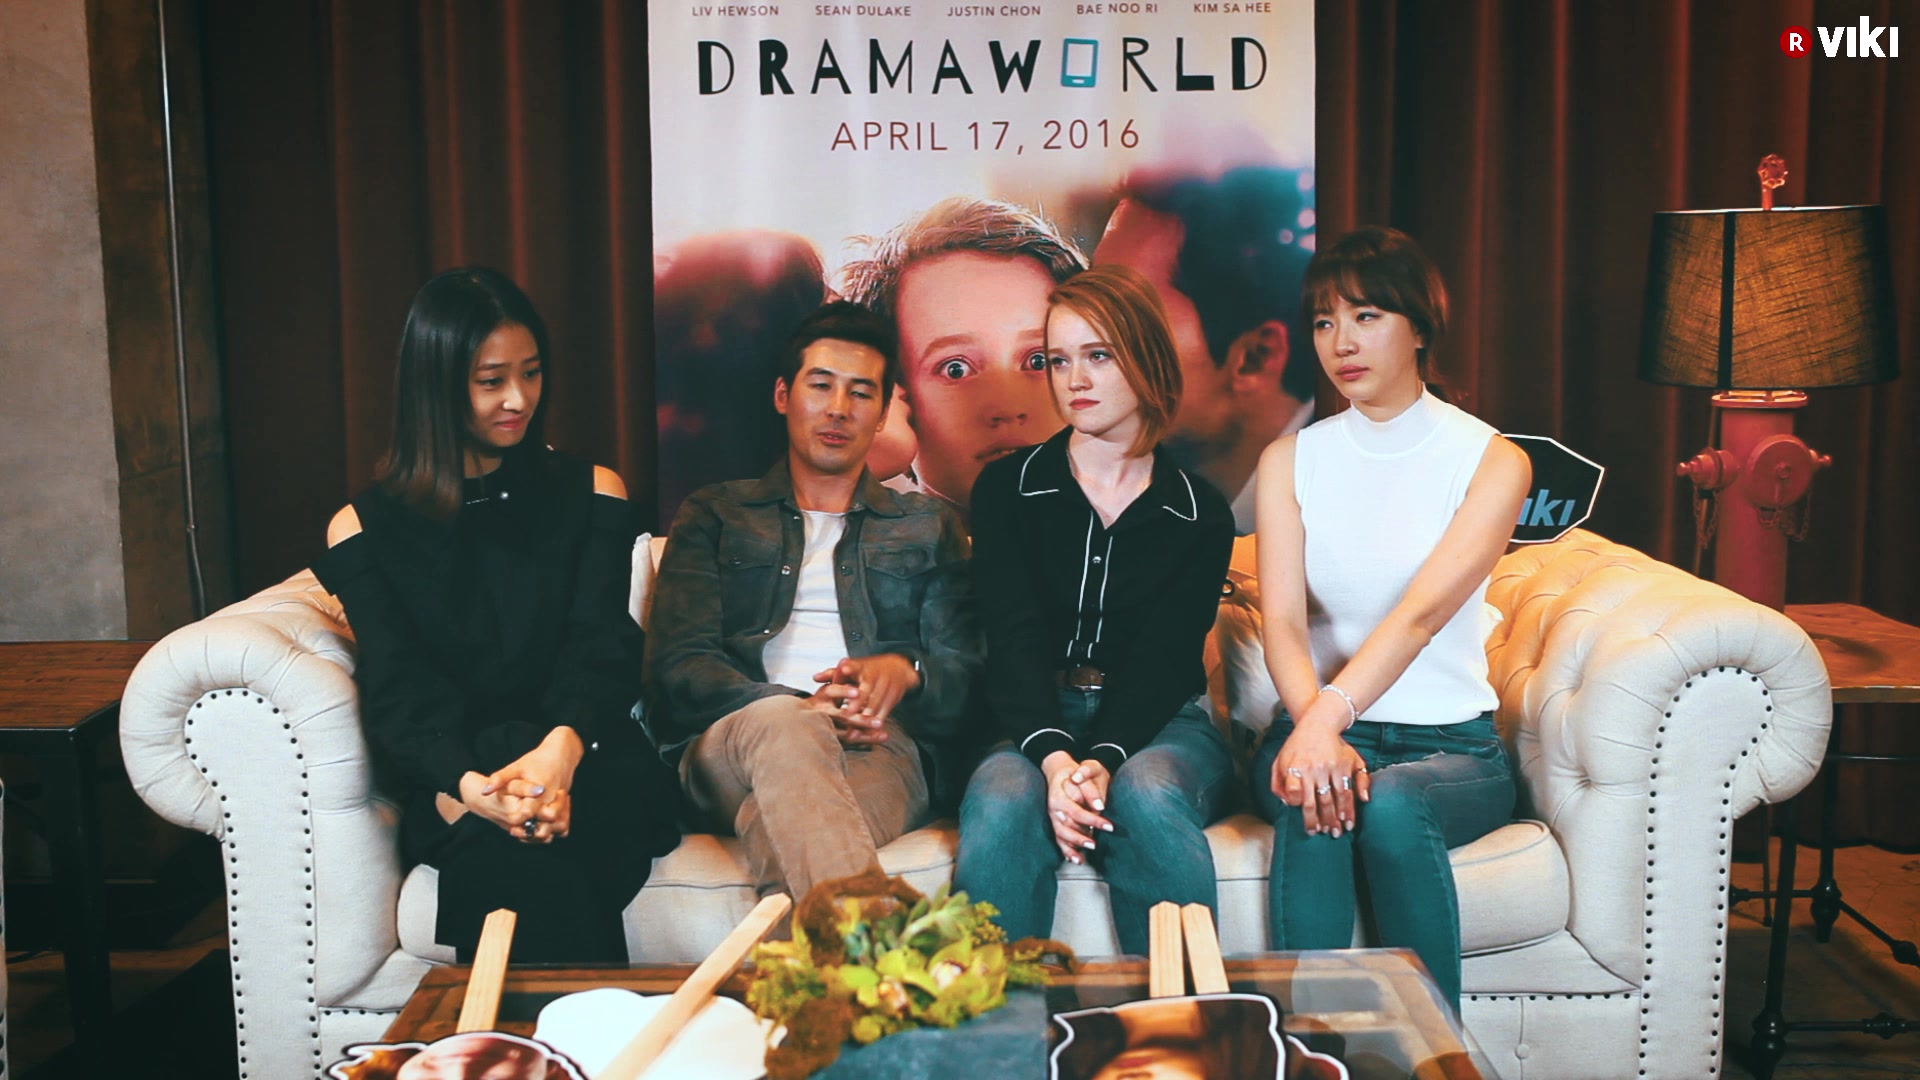 Dramaworld Cast Interview 2: Dramaworld